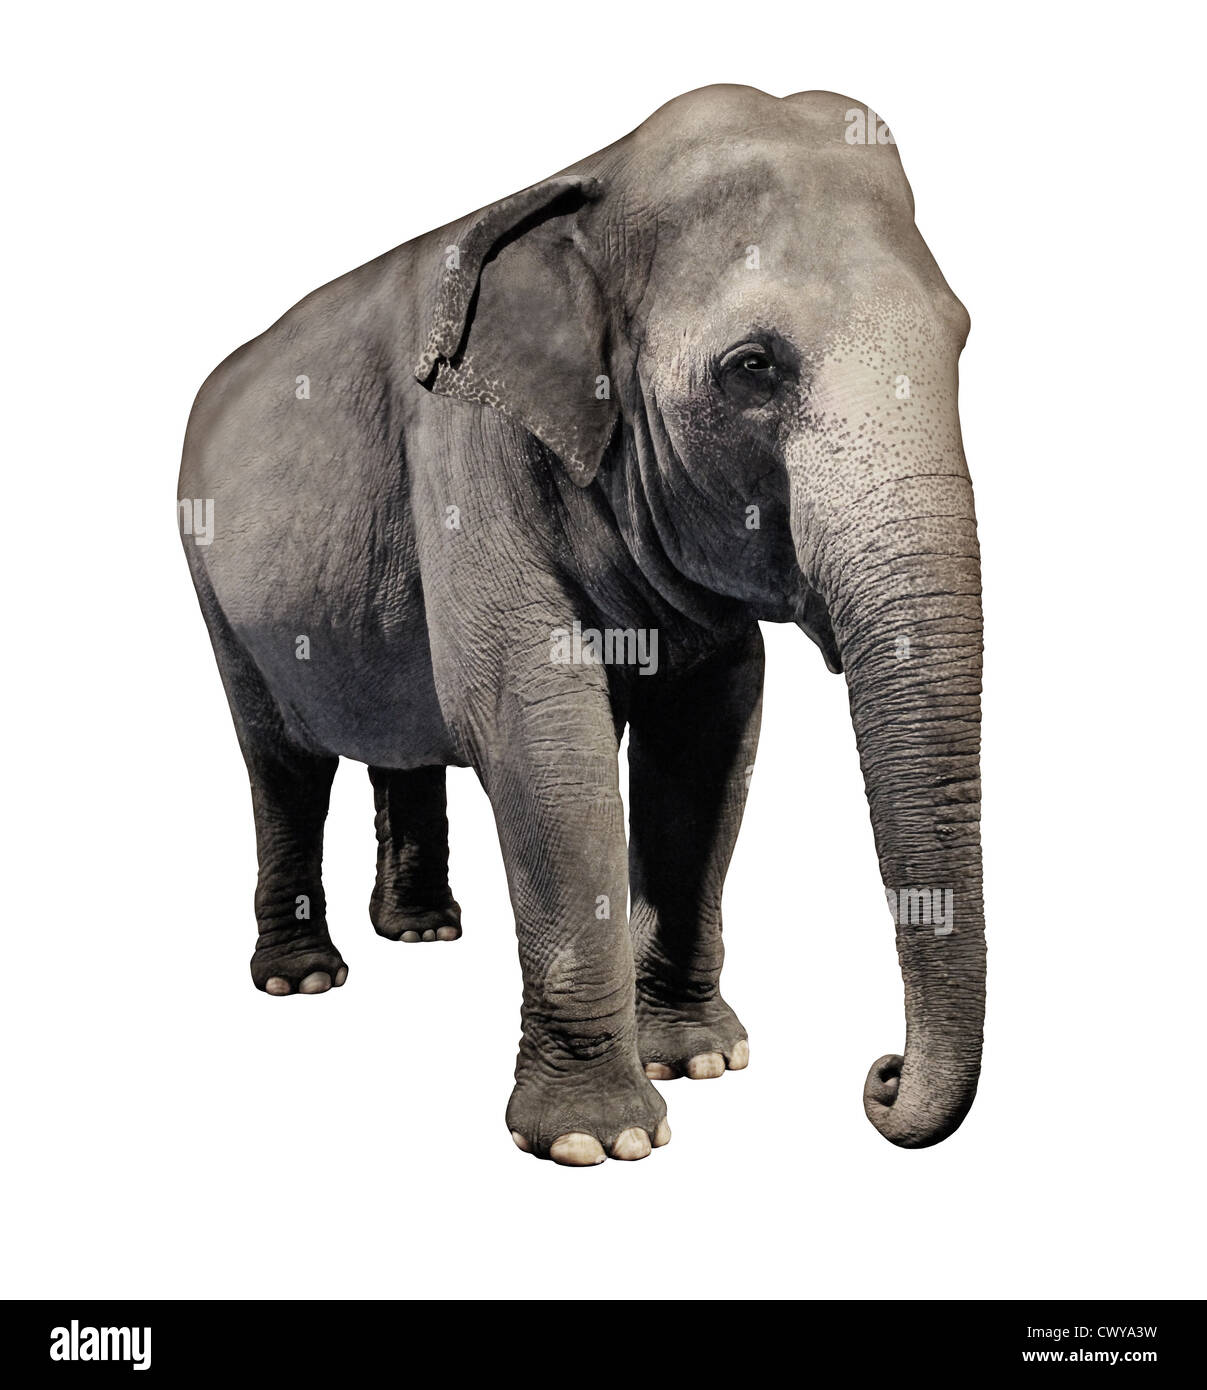 Elephant animal isolated on a white background in a three quarter elephant animal isolated on a white background in a three quarter view as an icon of wisdom and intelligence with a huge african wilderness pachyderm symbol biocorpaavc Gallery